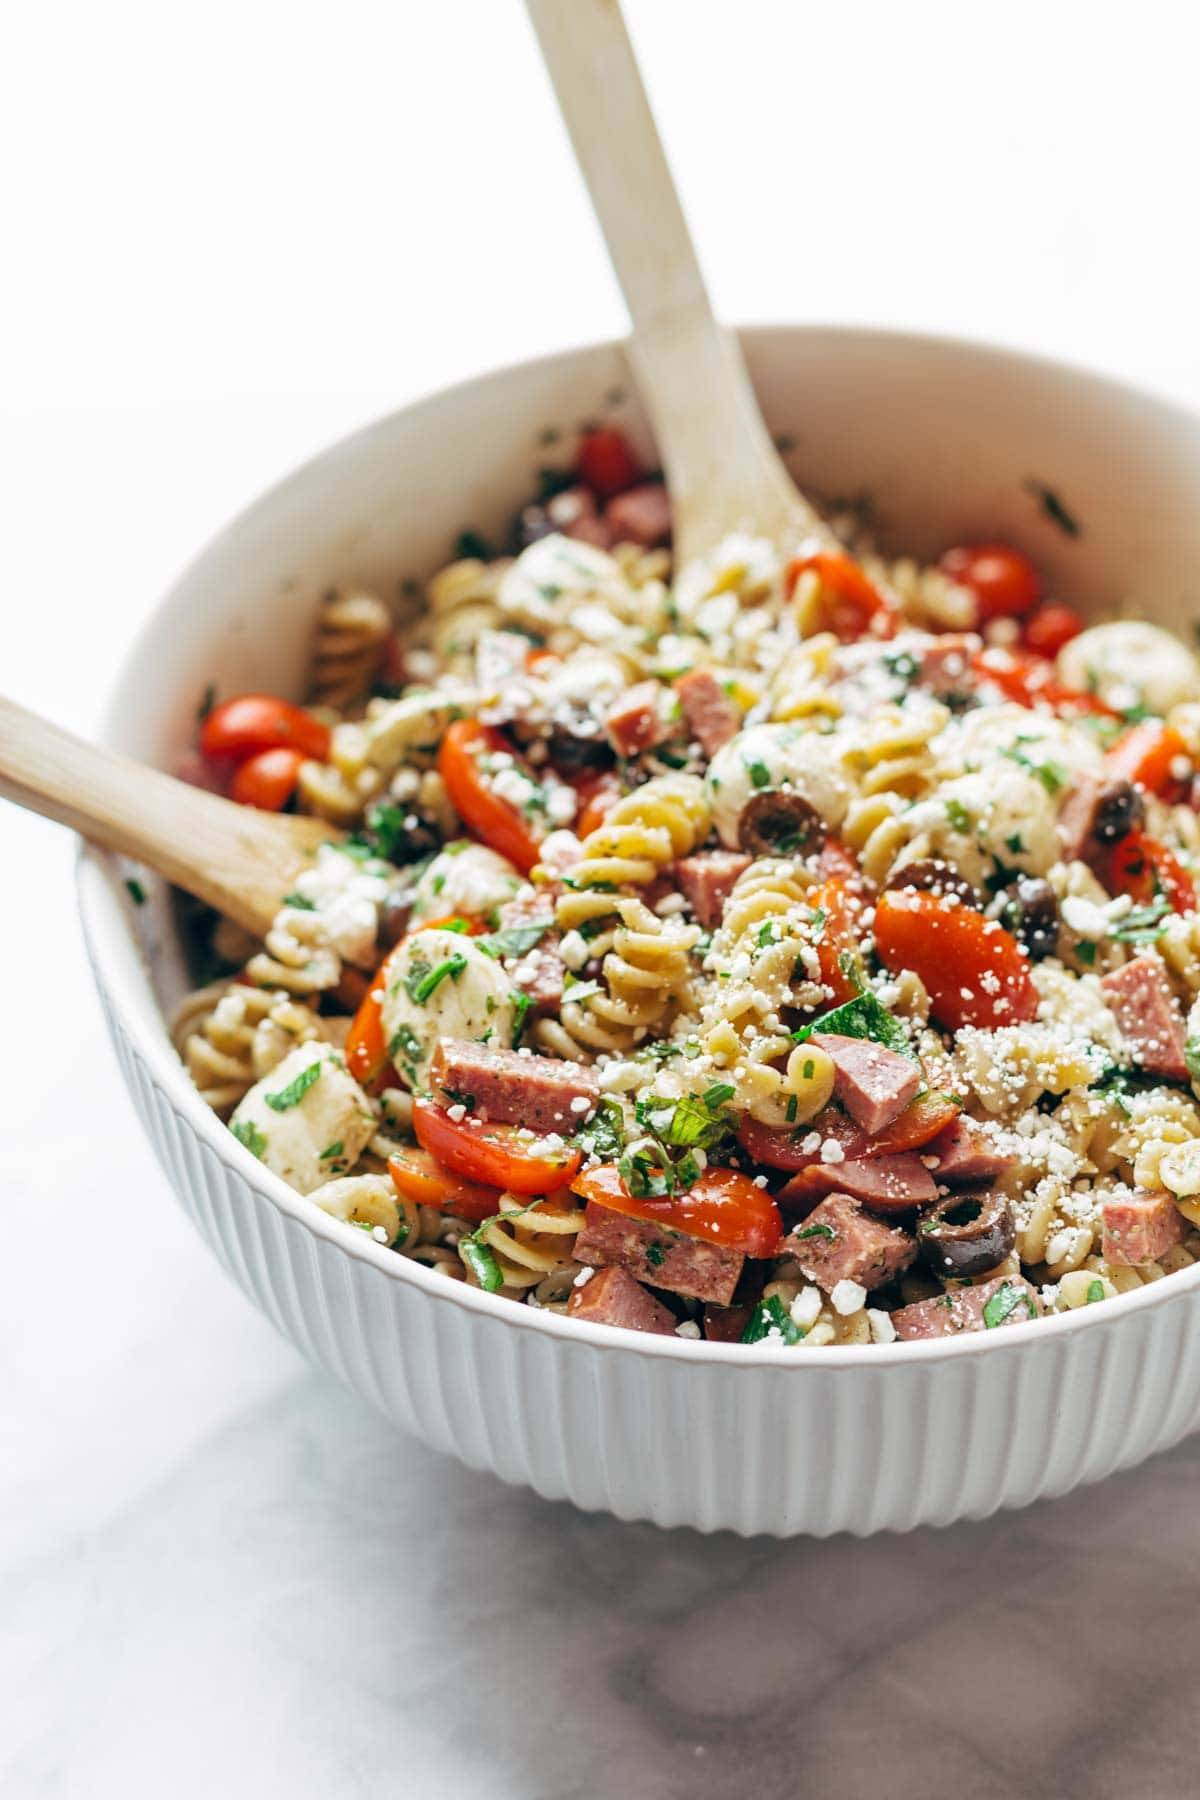 Best Easy Italian Pasta Salad - with pasta, tomatoes, fresh mozzarella, spicy salami, parsley, olives, and easy Italian dressing. Super versatile to what you have on hand! | pinchofyum.comc